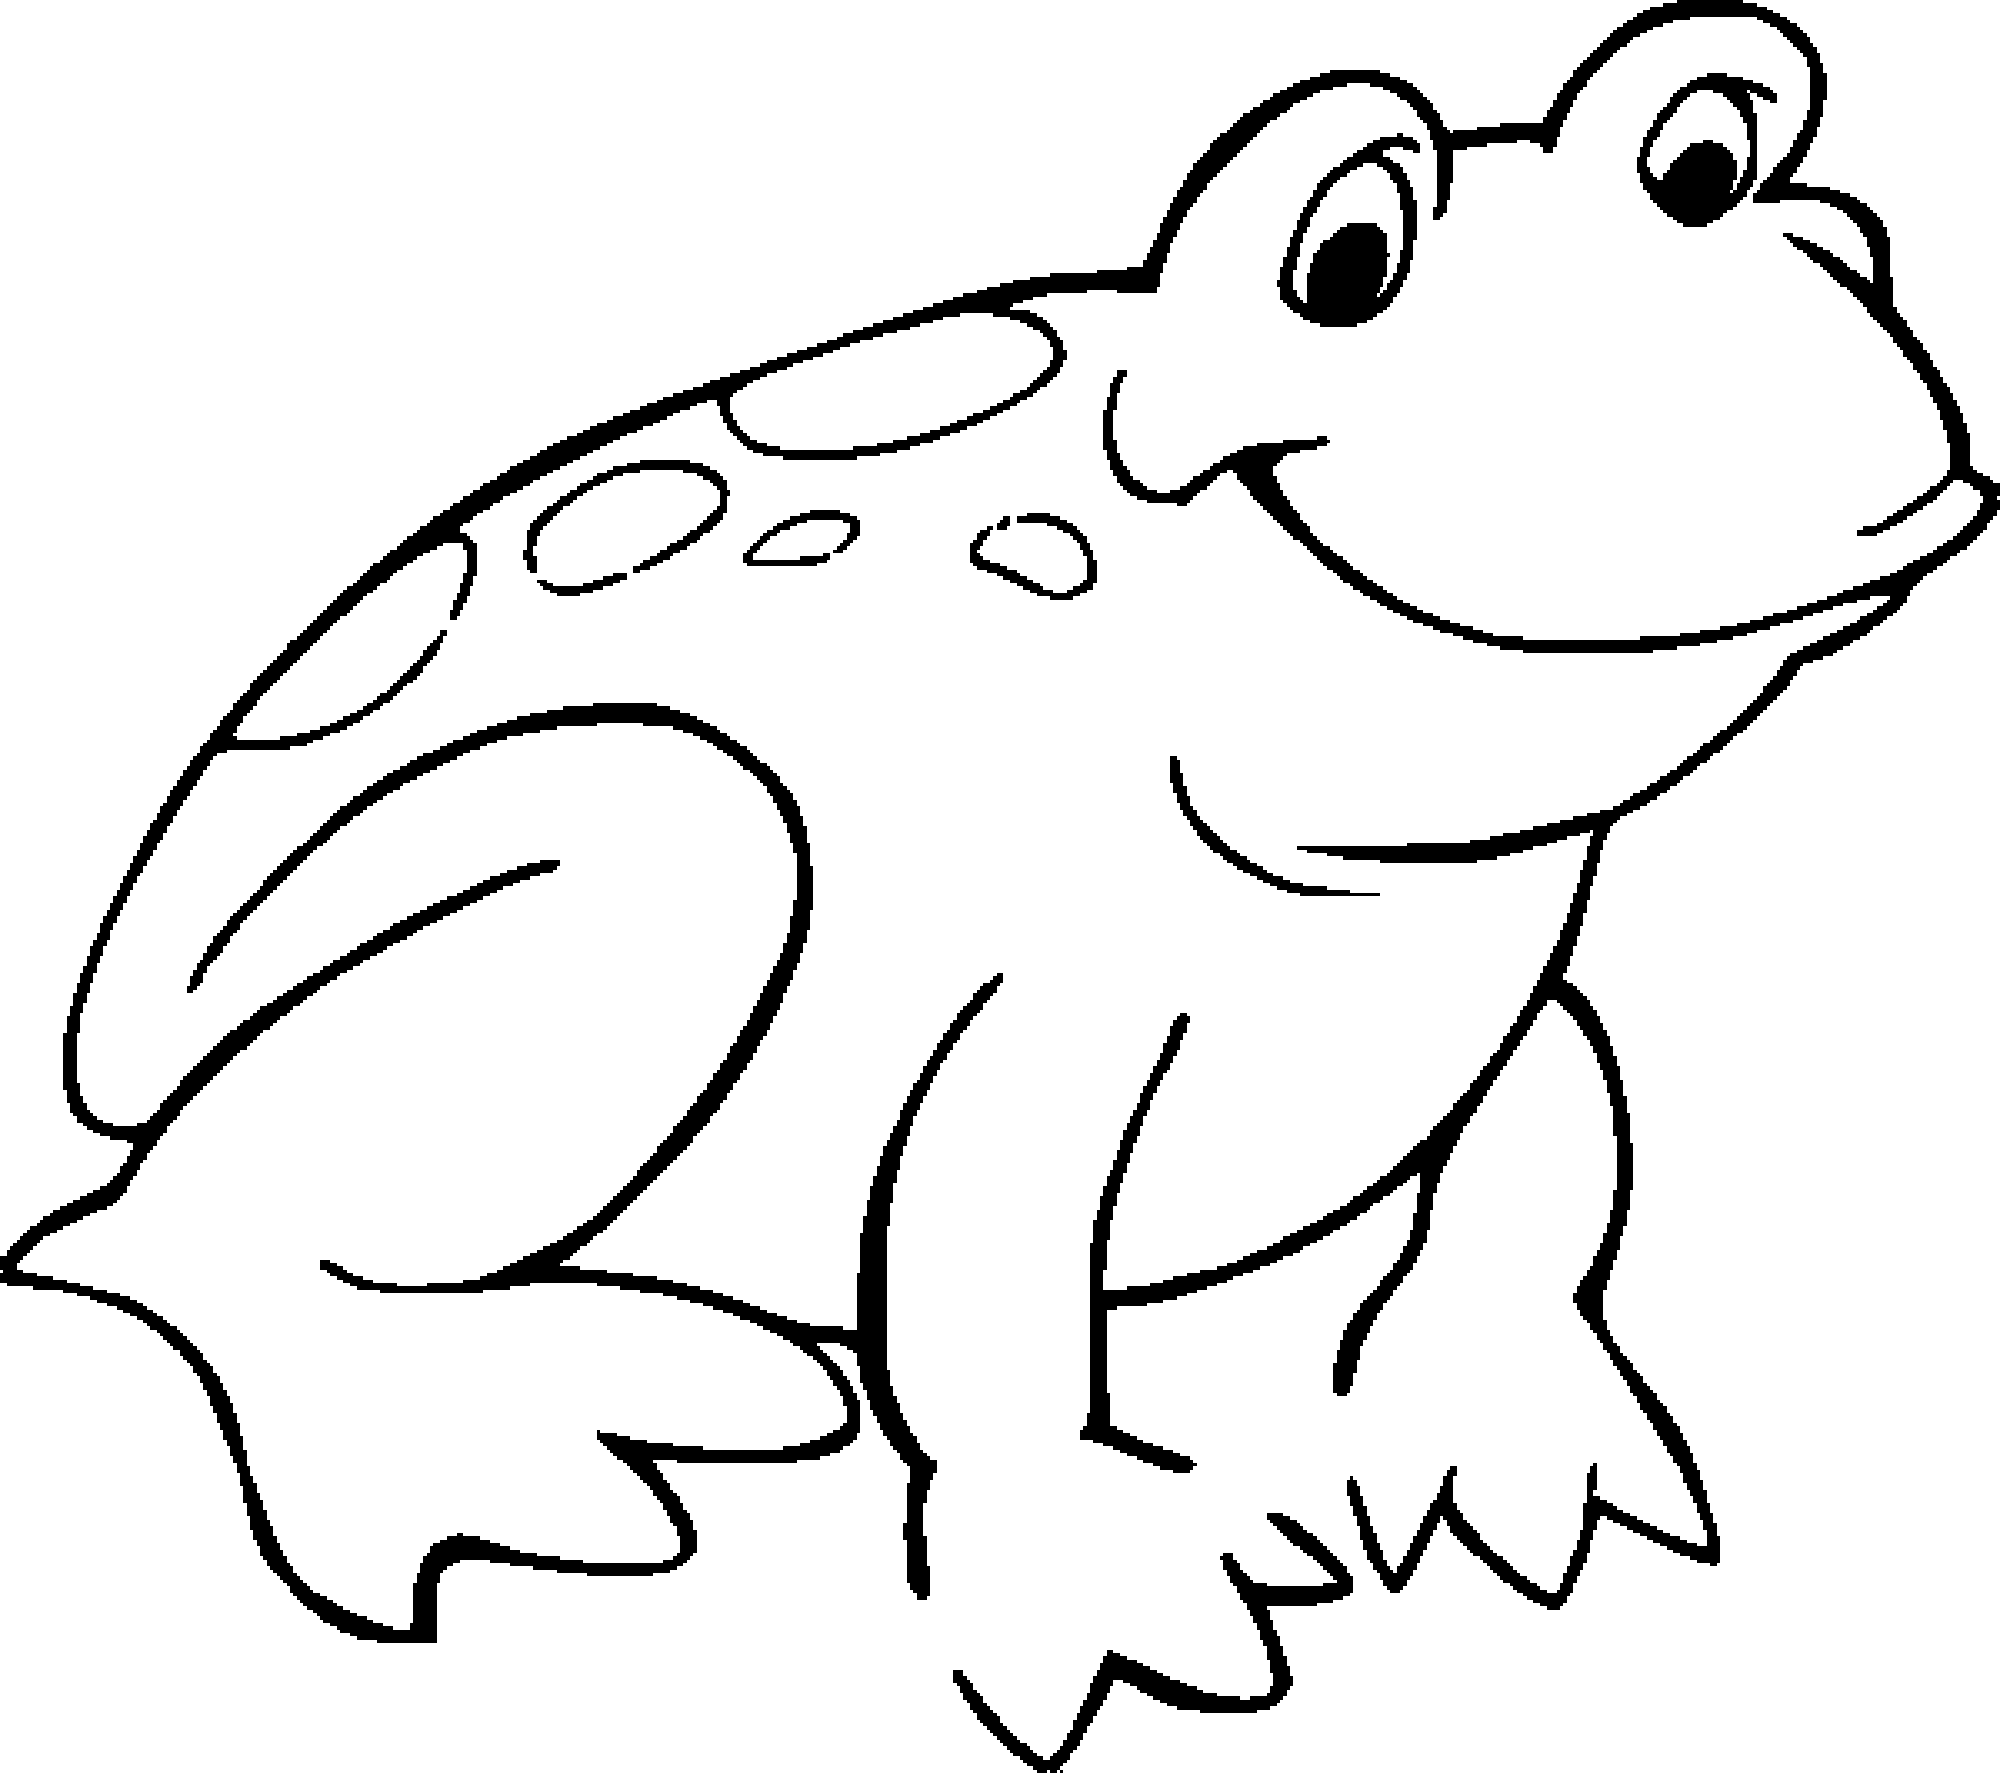 15 Frog Coloring Pages